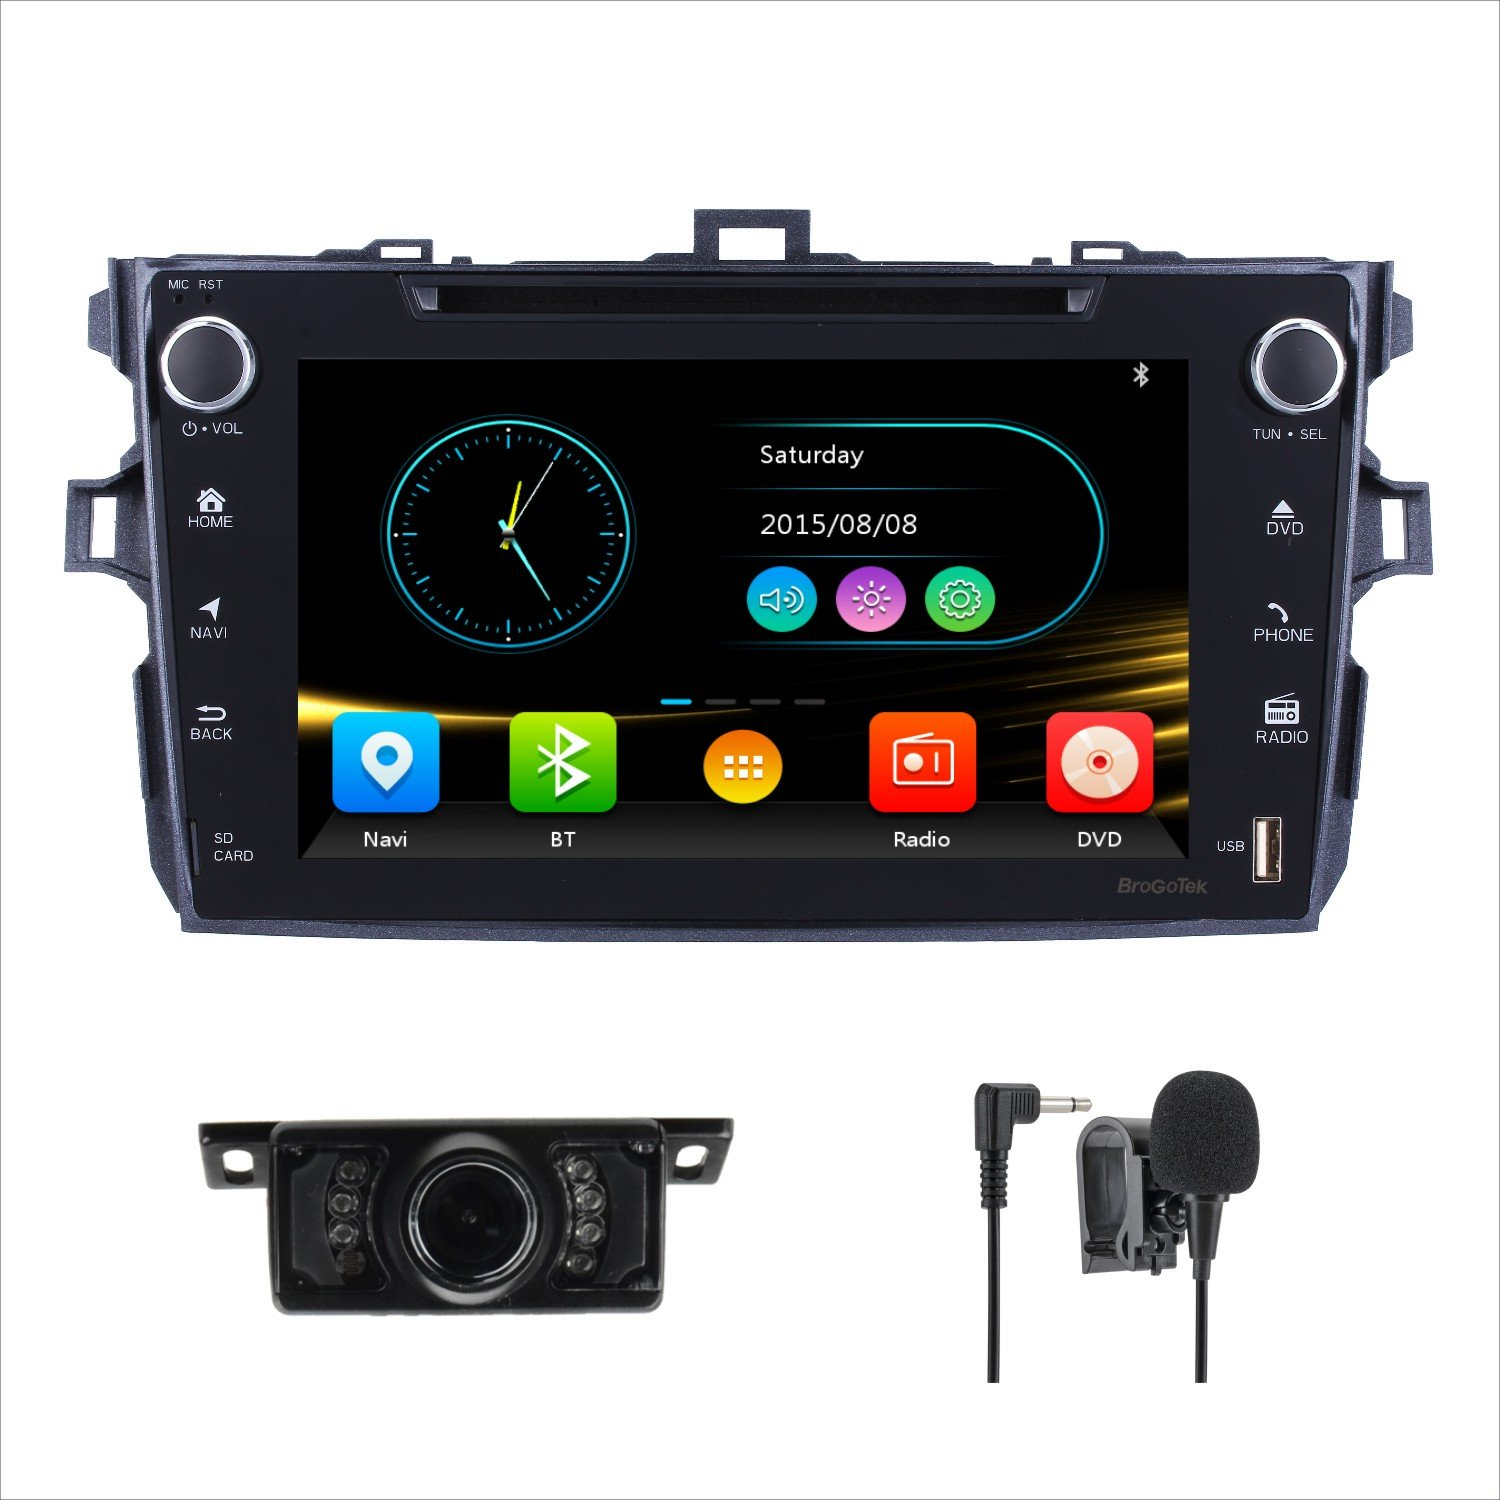 Amazon.com: Car GPS stereo for Toyota Corolla 2007-2013 8 Inch Double Din  Touch Screen Car DVD Player FM AM Radio Bluetooth SWC with Backup camera  Mic: GPS ...